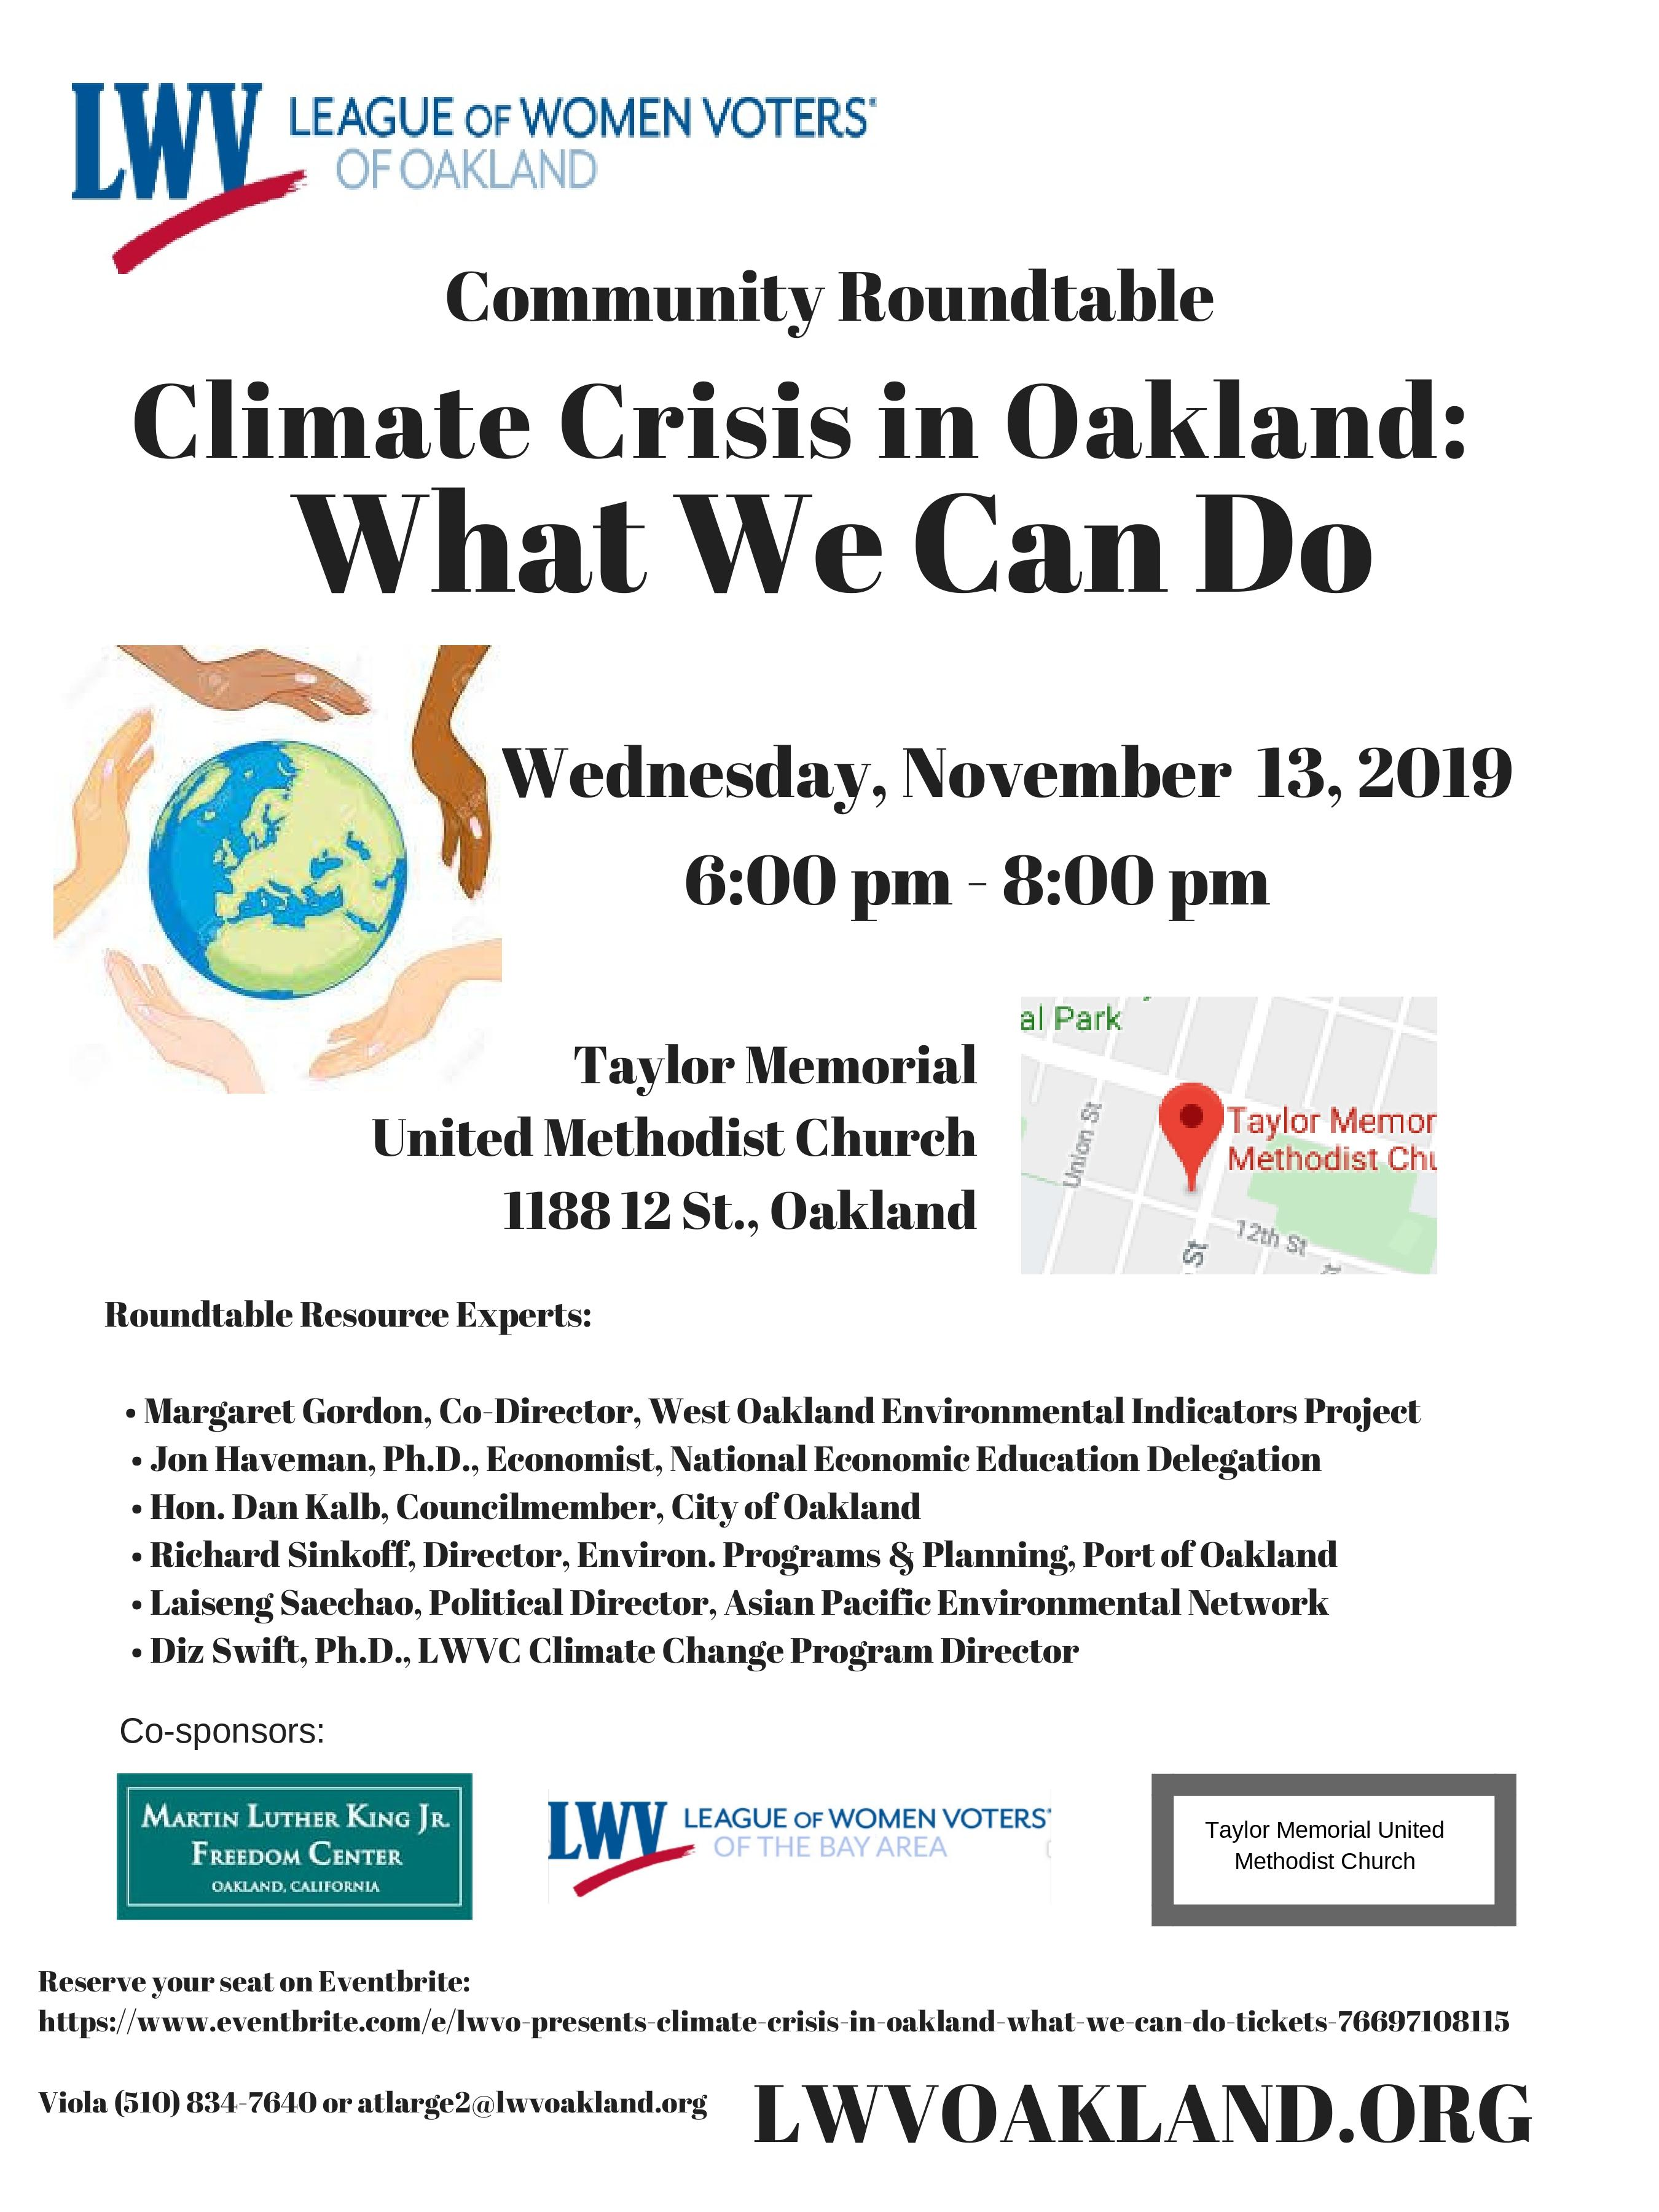 Climate Roundtable Flyer